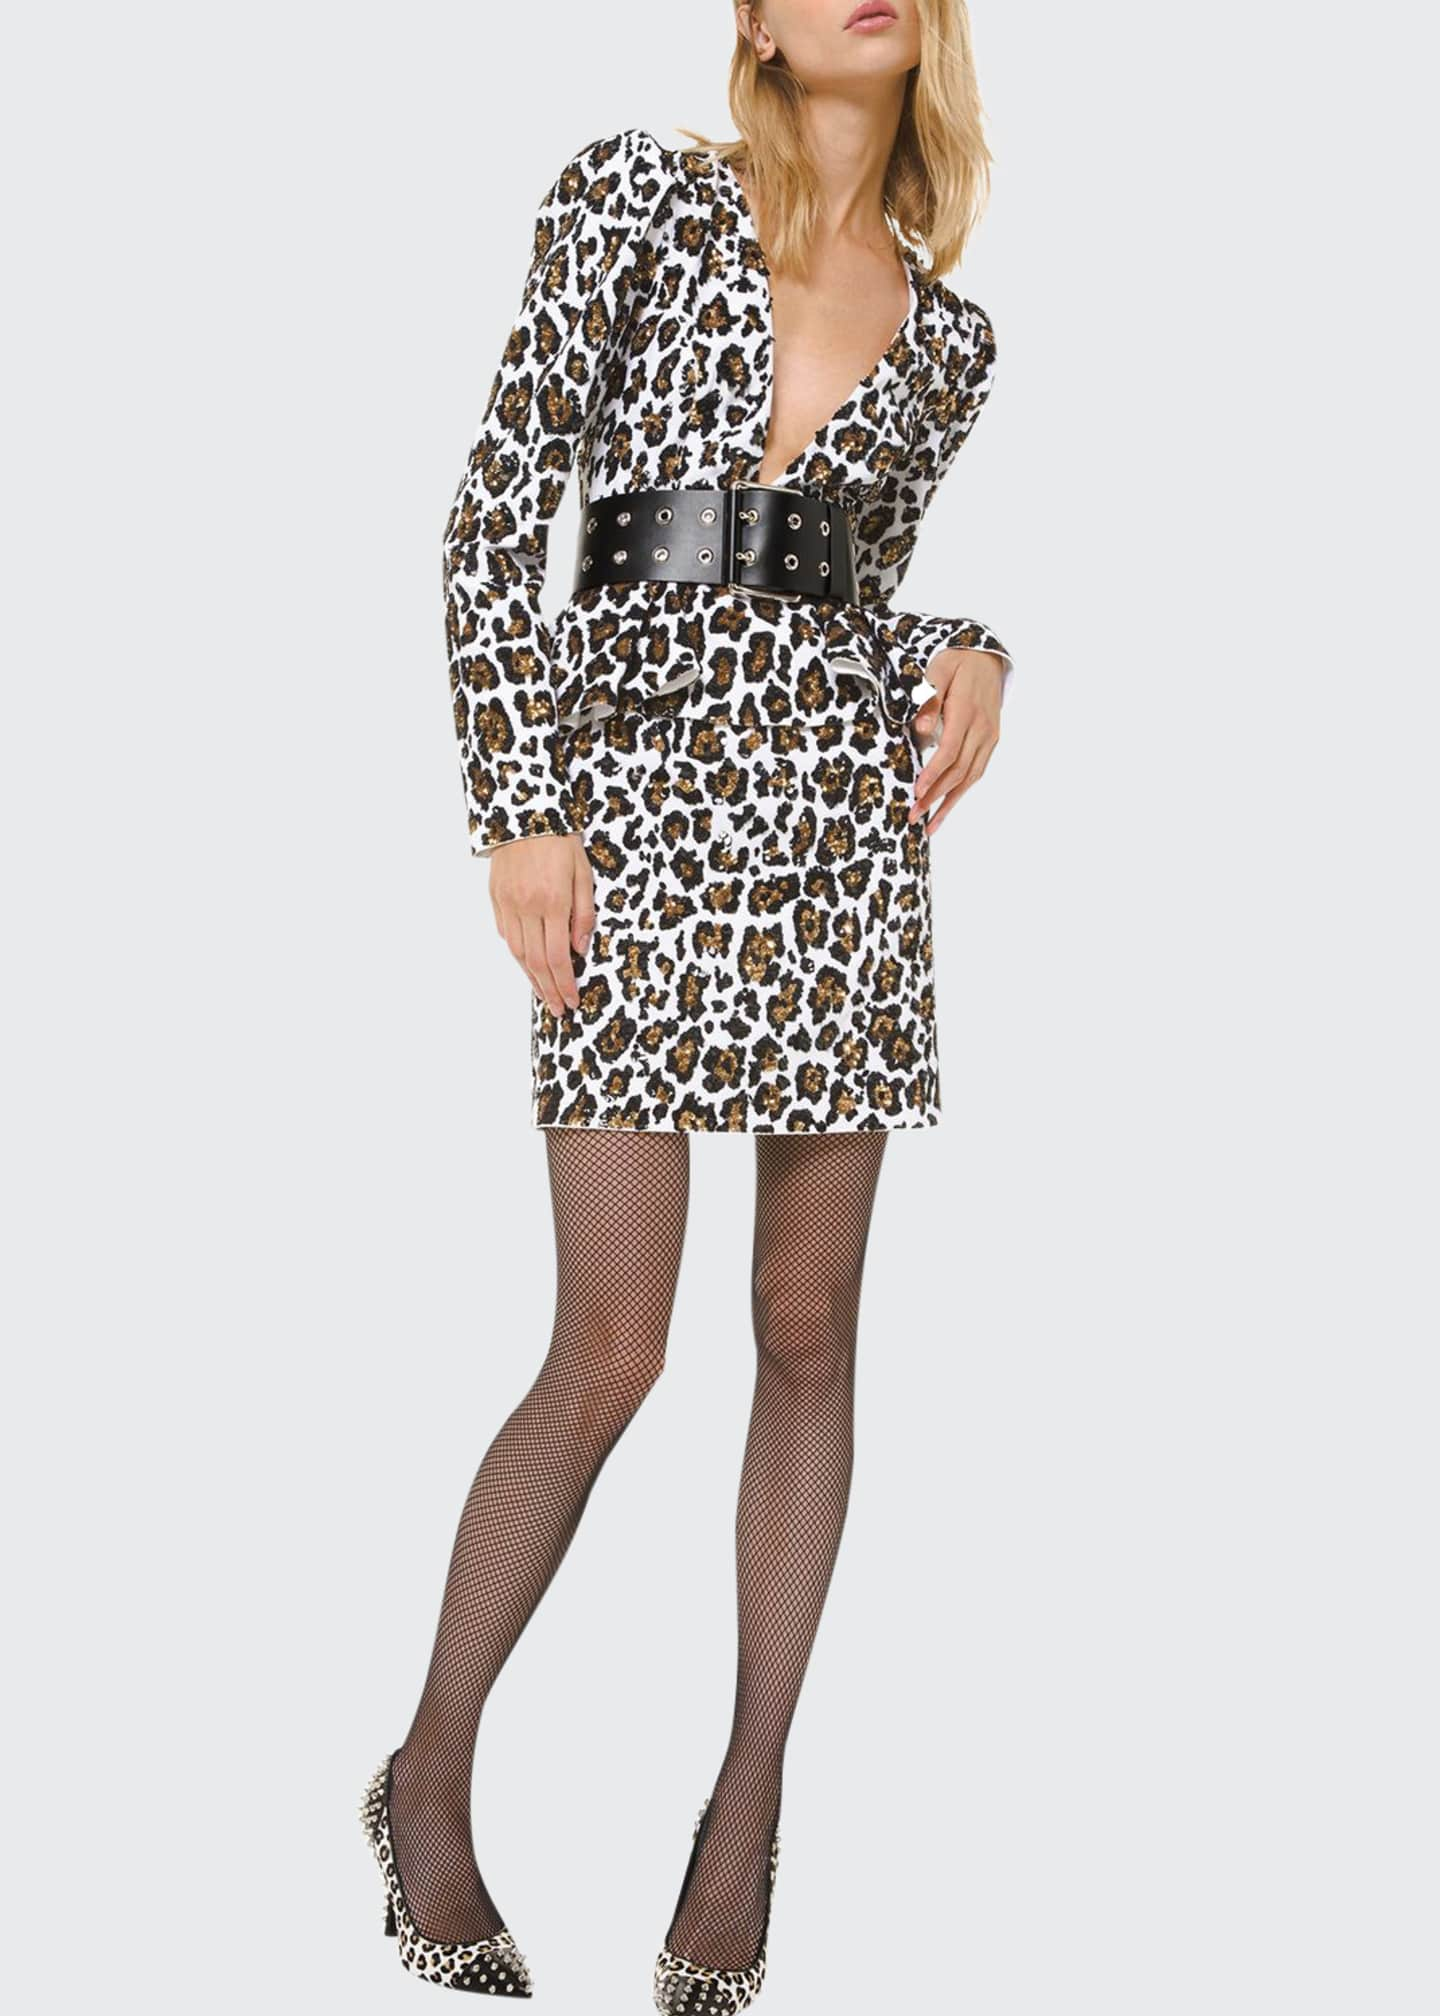 Michael Kors Collection Leopard-Print Plunging-Neck Dress